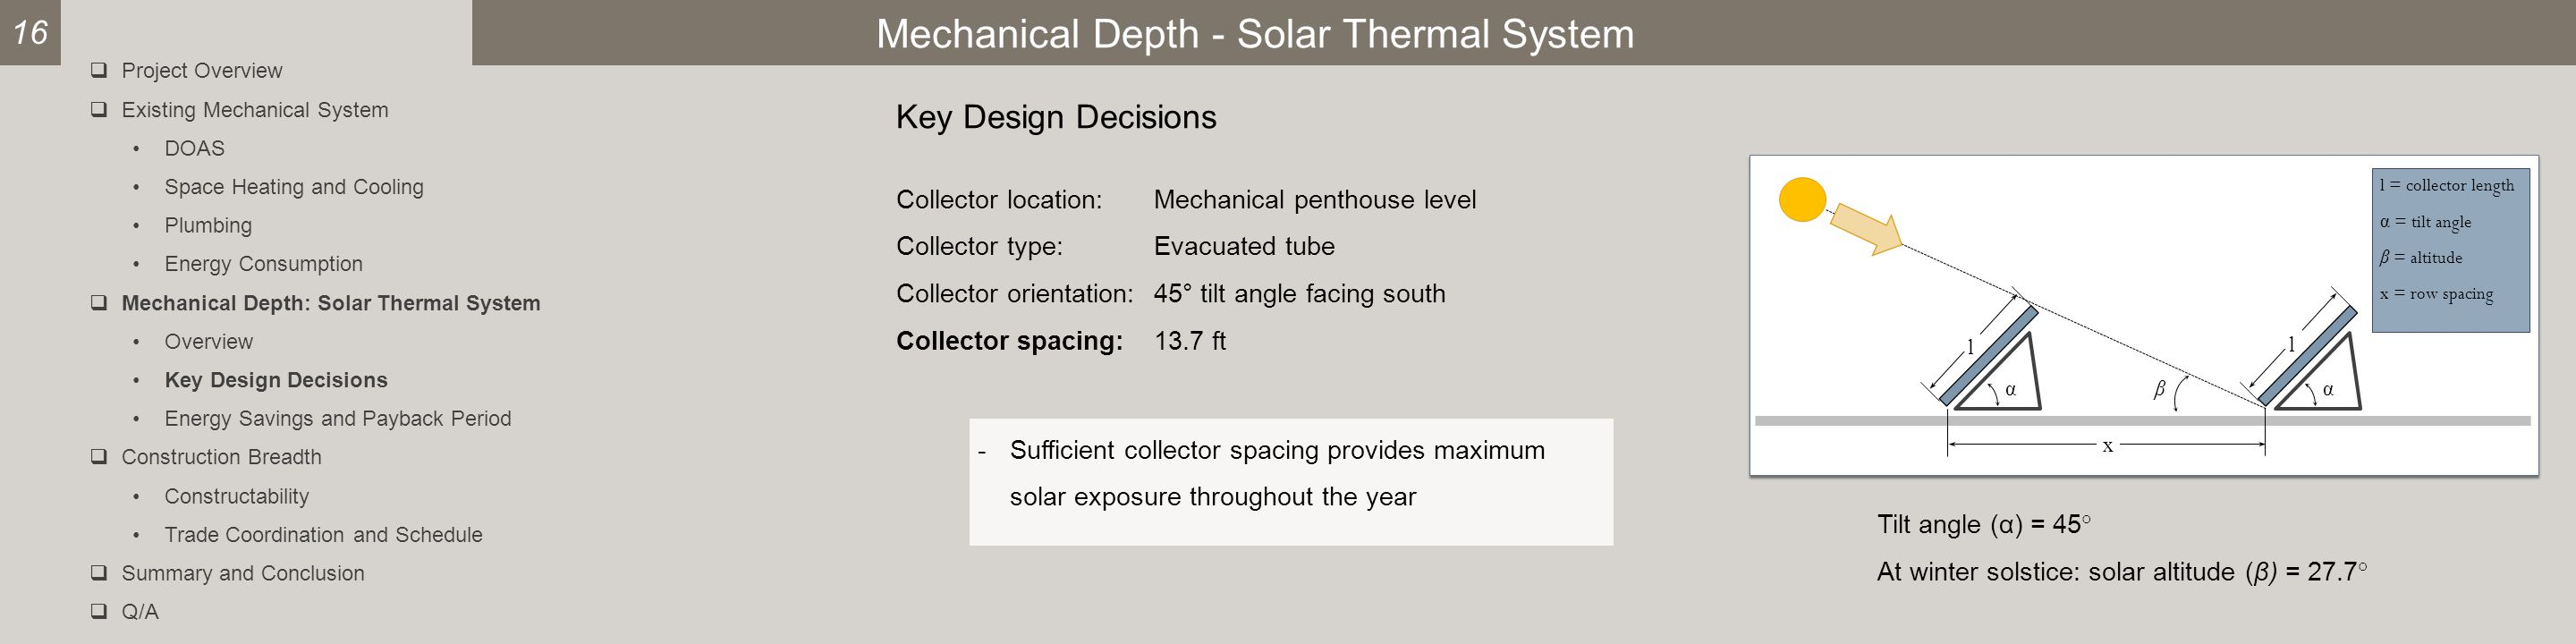 Mechanical Depth - Solar Thermal System Key Design Decisions Collector location:Mechanical penthouse level Collector type:Evacuated tube Collector orientation:45° tilt angle facing south Collector spacing:13.7 ft l β l x αα l = collector length α = tilt angle β = altitude x = row spacing Tilt angle (α) = 45° At winter solstice: solar altitude (β) = 27.7° -Sufficient collector spacing provides maximum solar exposure throughout the year 16  Project Overview  Existing Mechanical System DOAS Space Heating and Cooling Plumbing Energy Consumption  Mechanical Depth: Solar Thermal System Overview Key Design Decisions Energy Savings and Payback Period  Construction Breadth Constructability Trade Coordination and Schedule  Summary and Conclusion  Q/A